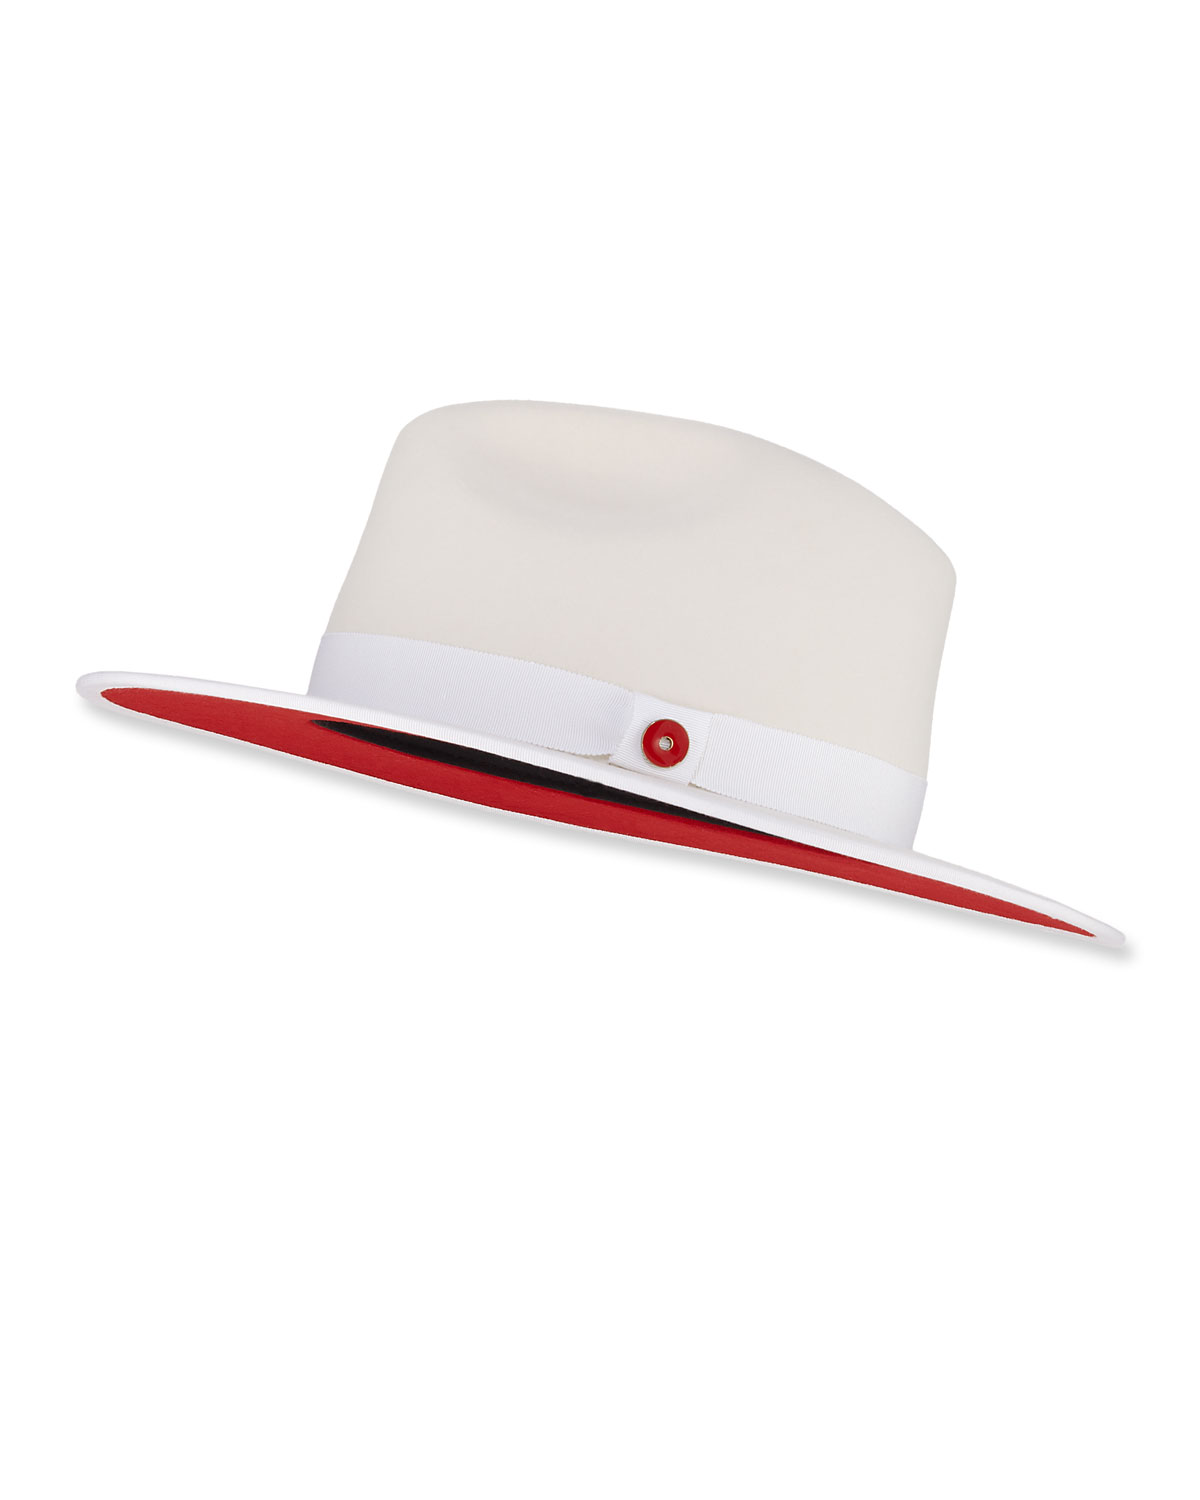 e6d115afe945b Keith and James Queen Red-Brim Wool Fedora Hat